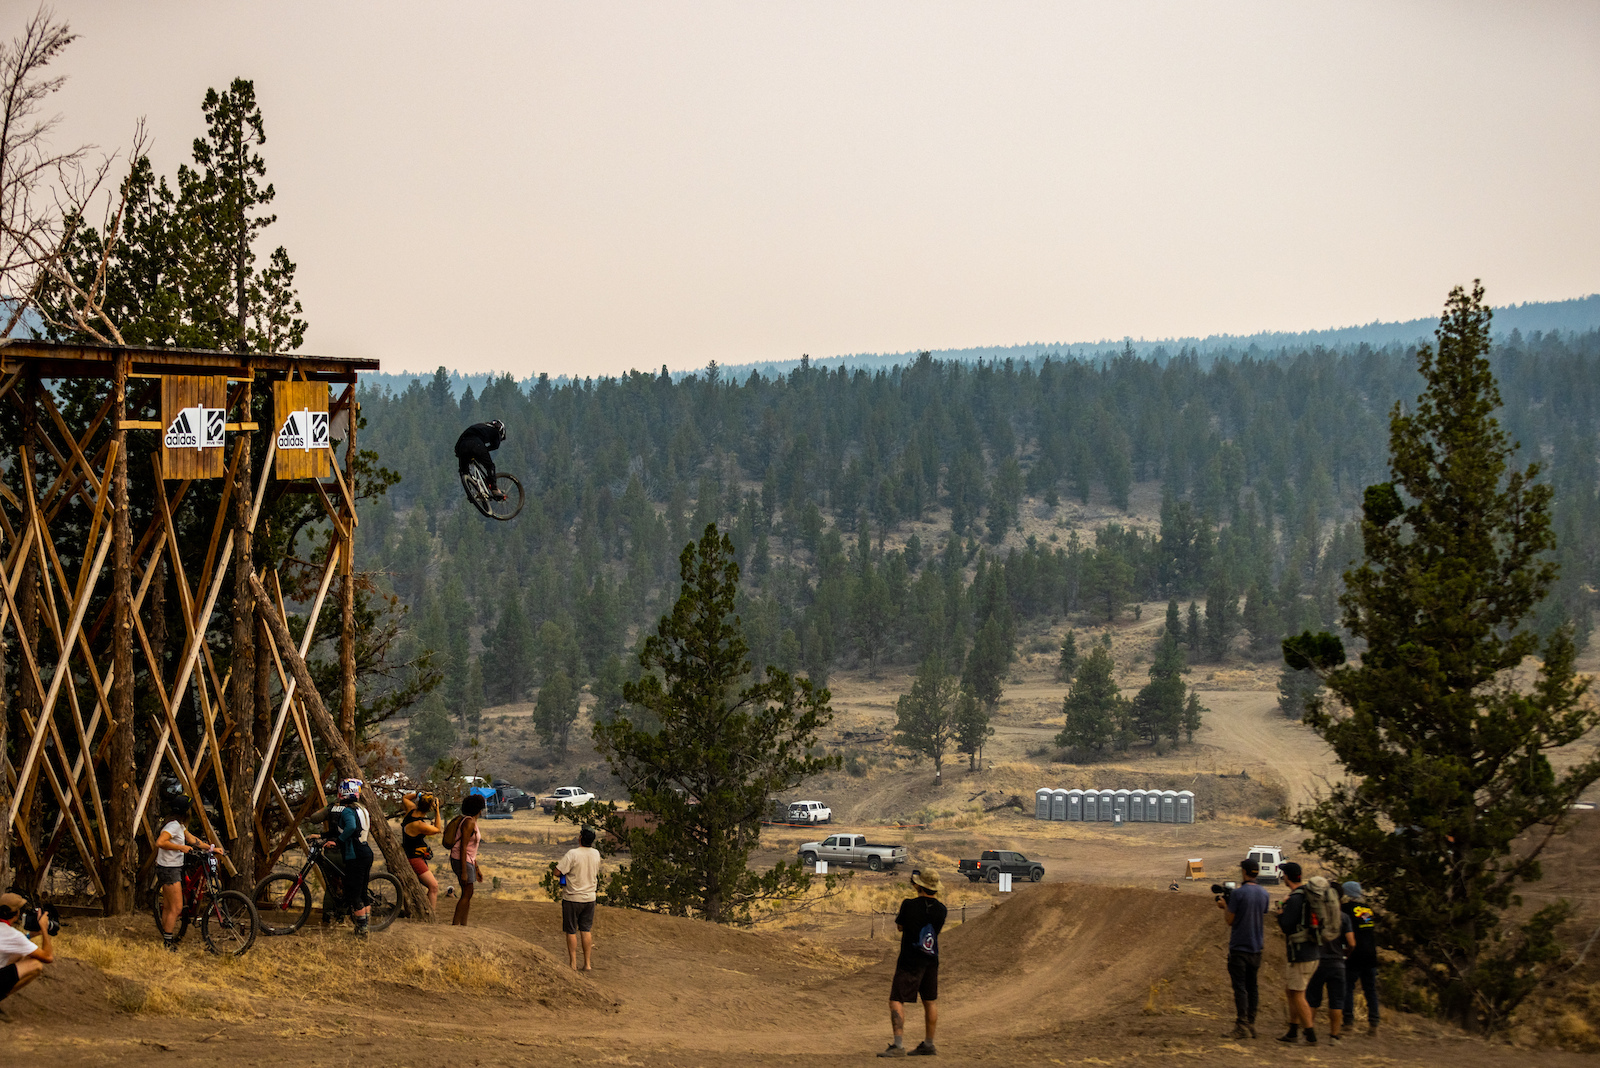 Johnny was one of the first to drop the largest drop on course he did it perfectly. No surprise there.